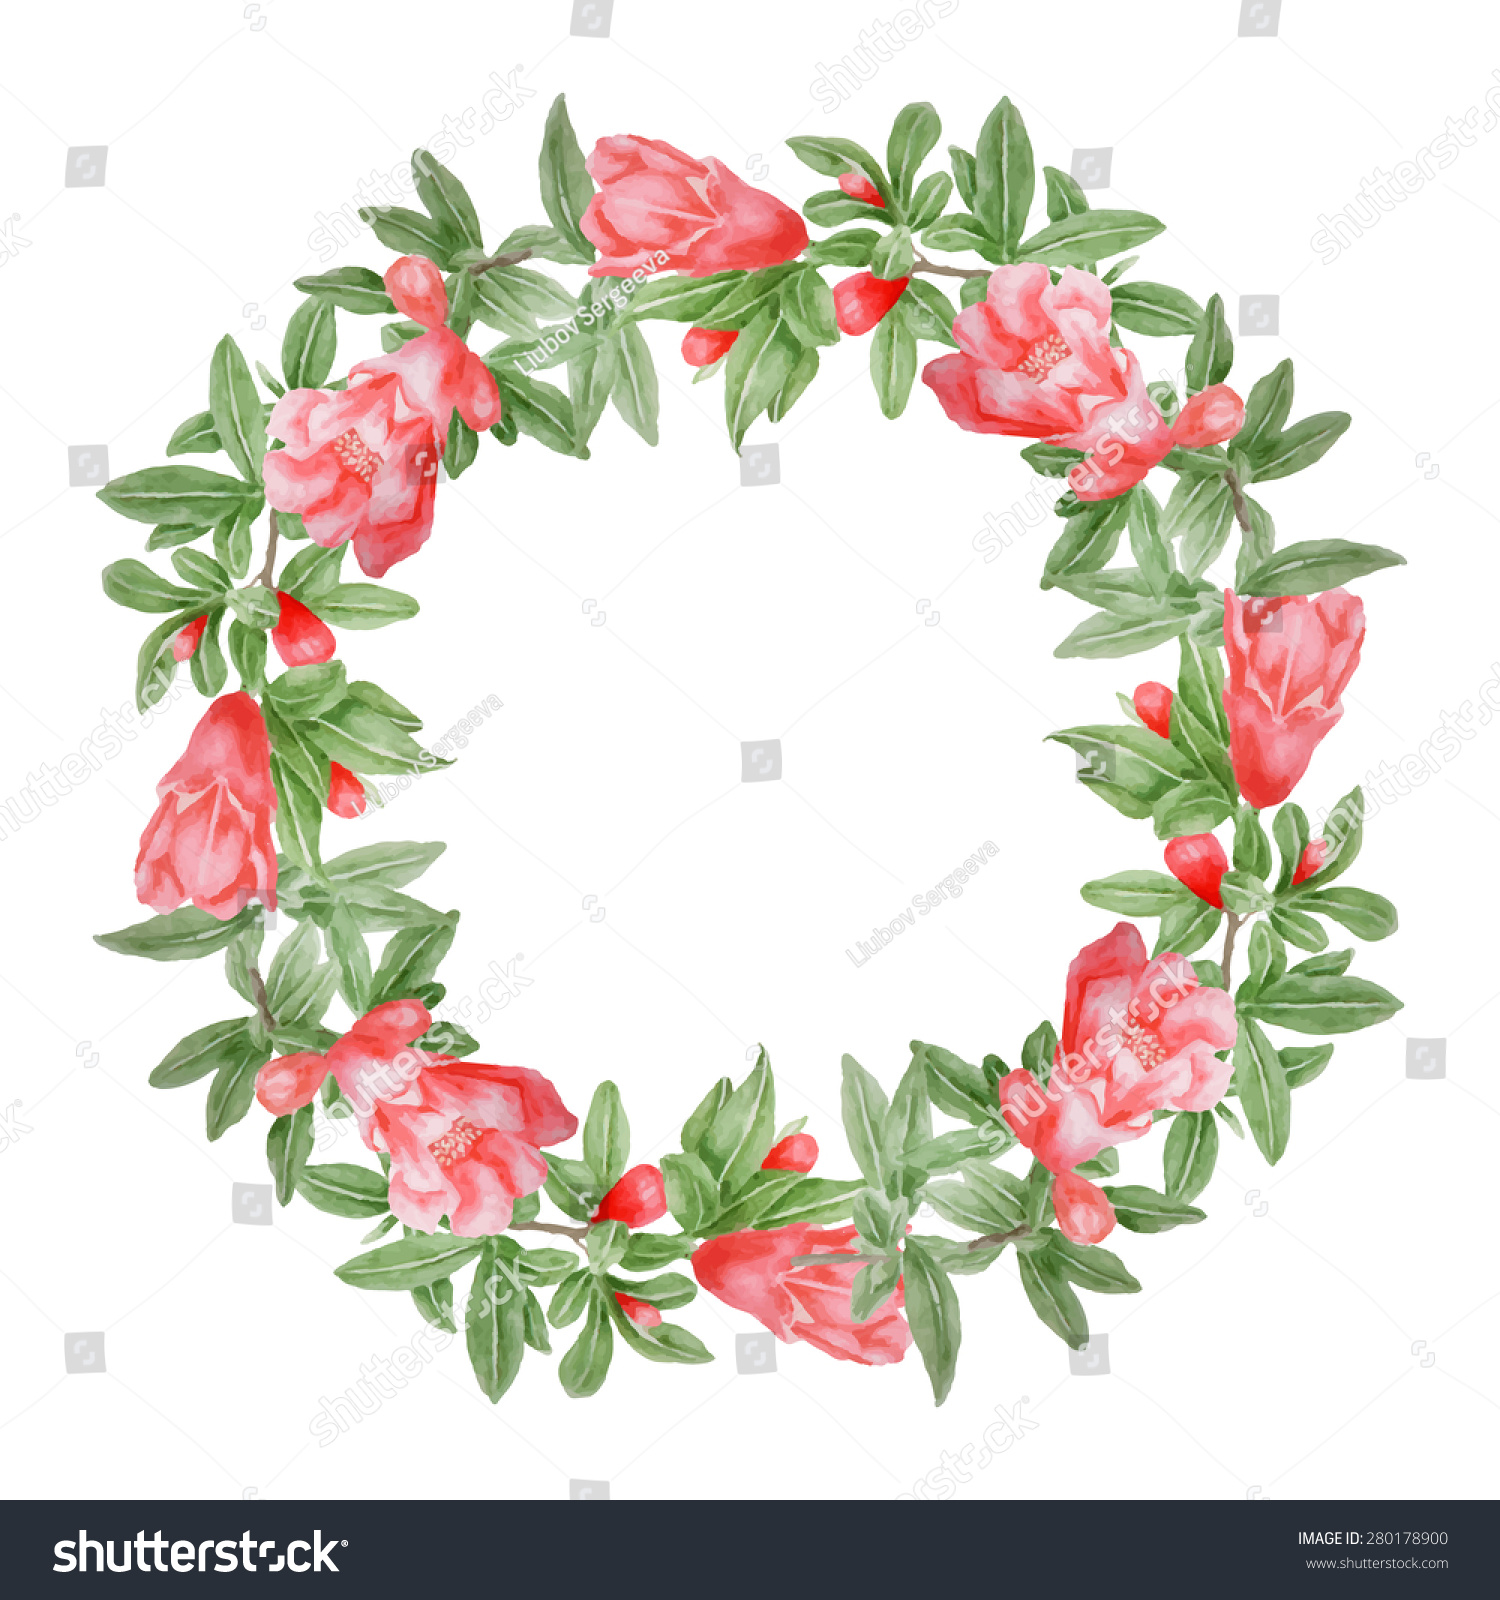 Vector Pomegranate Tree Flowers Watercolor Wreath Stock Vector ...